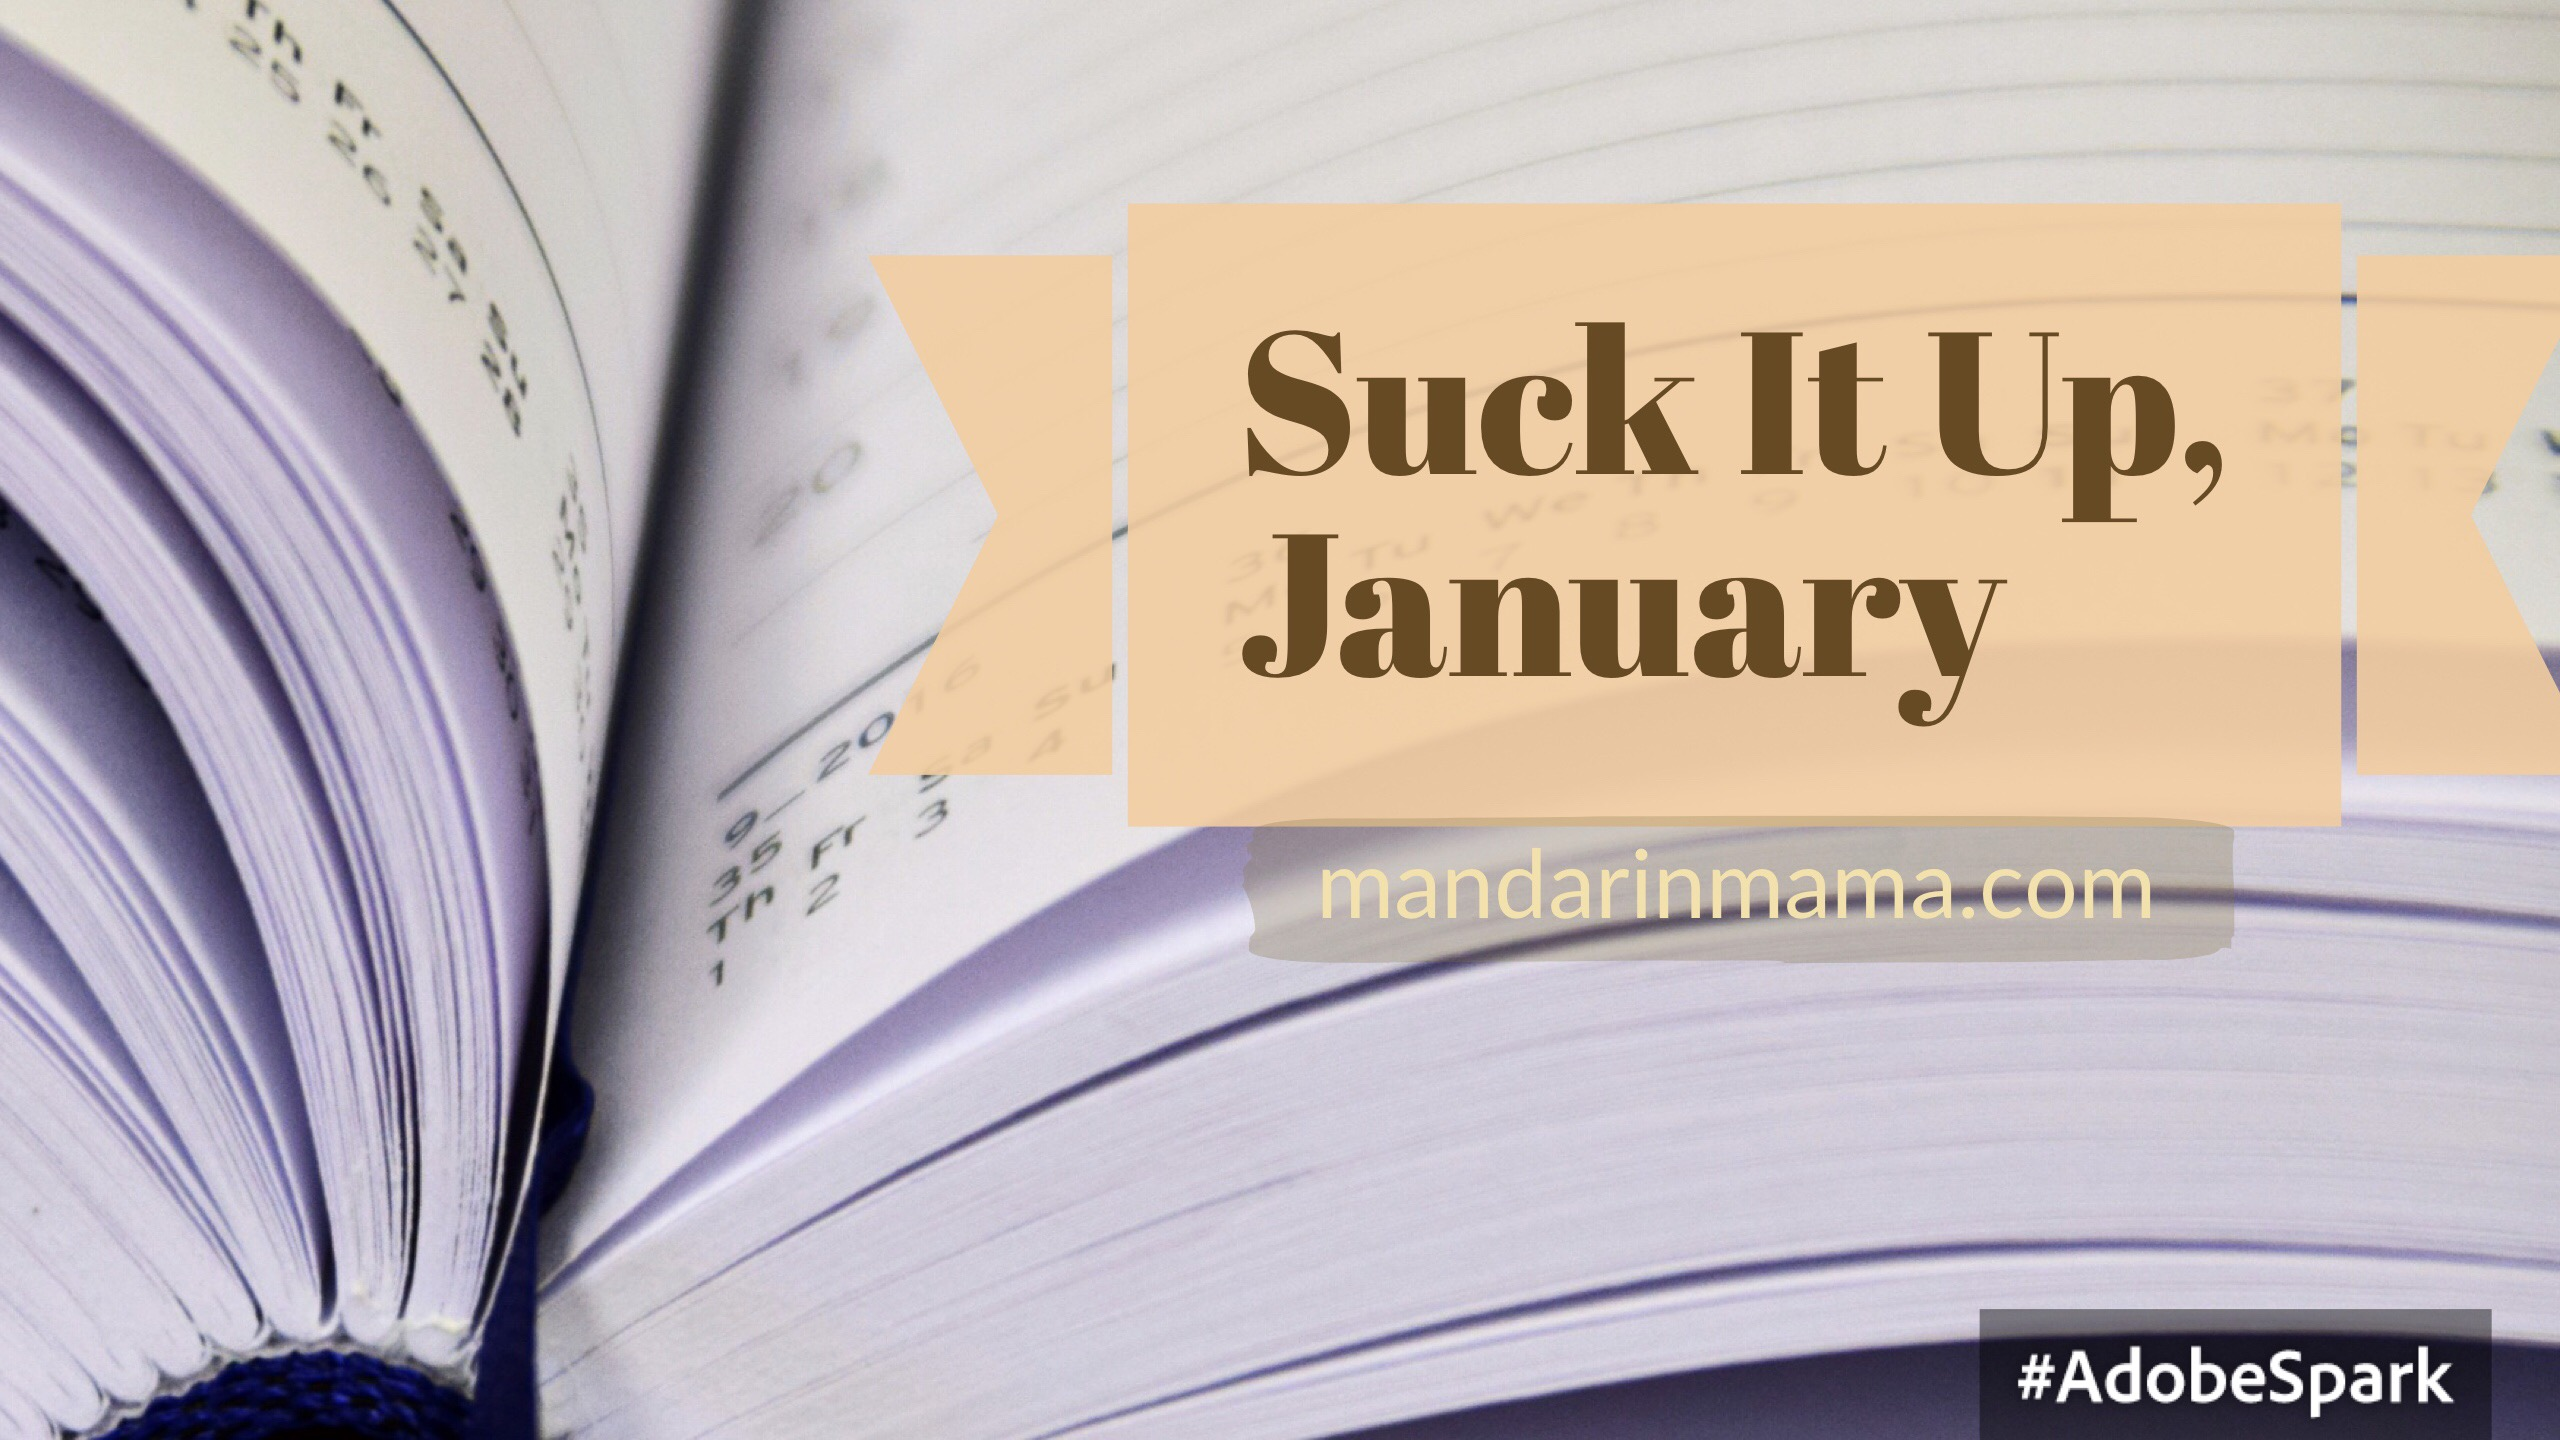 Suck It Up, January